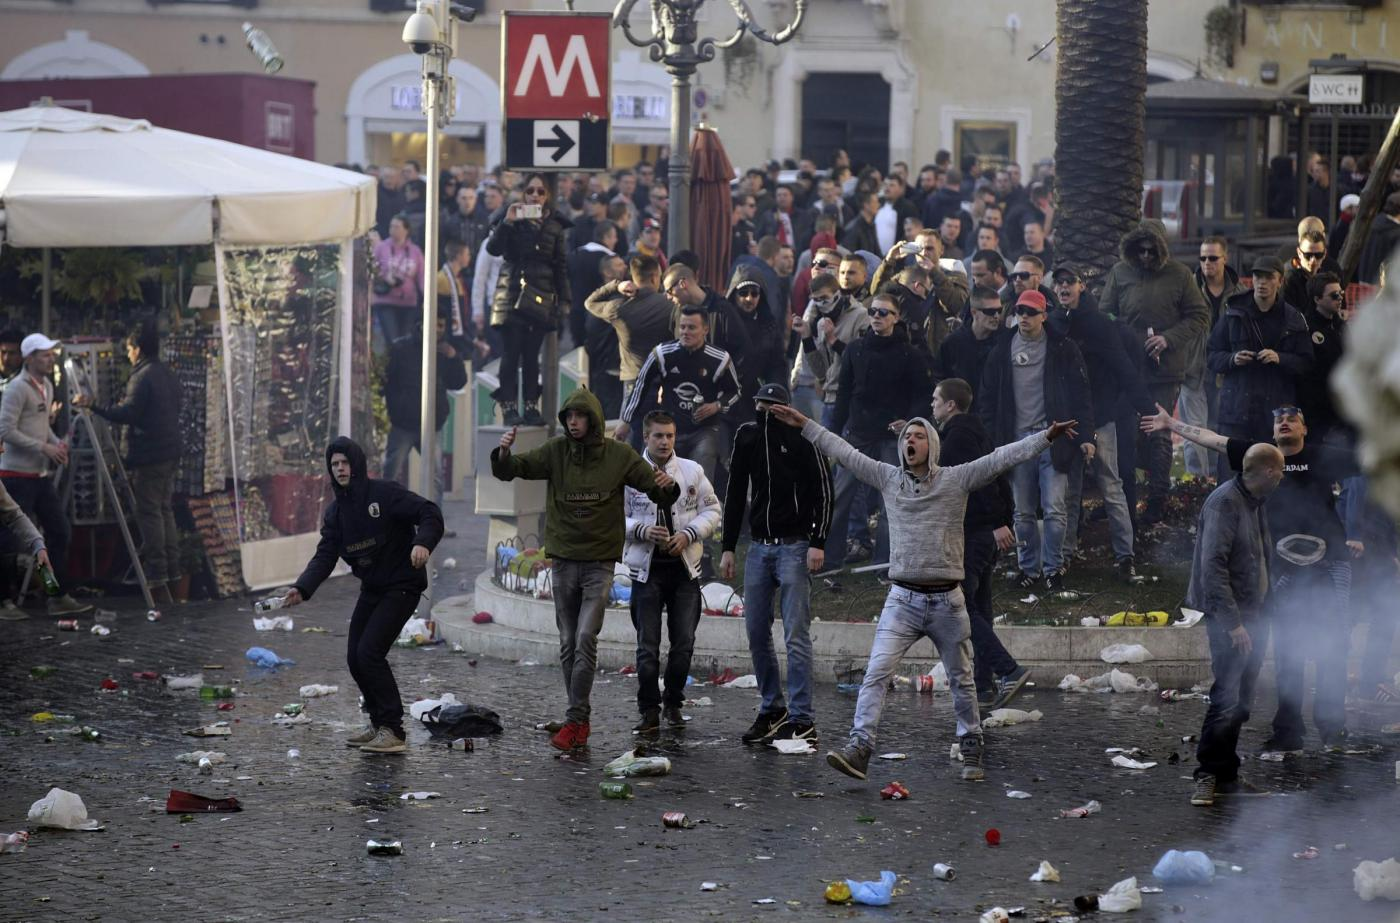 Feyenoord fans gesture and shout during clashes at the Spanish Steps prior to the start of the Europa League soccer match between Roma and Feyenoord in Rome